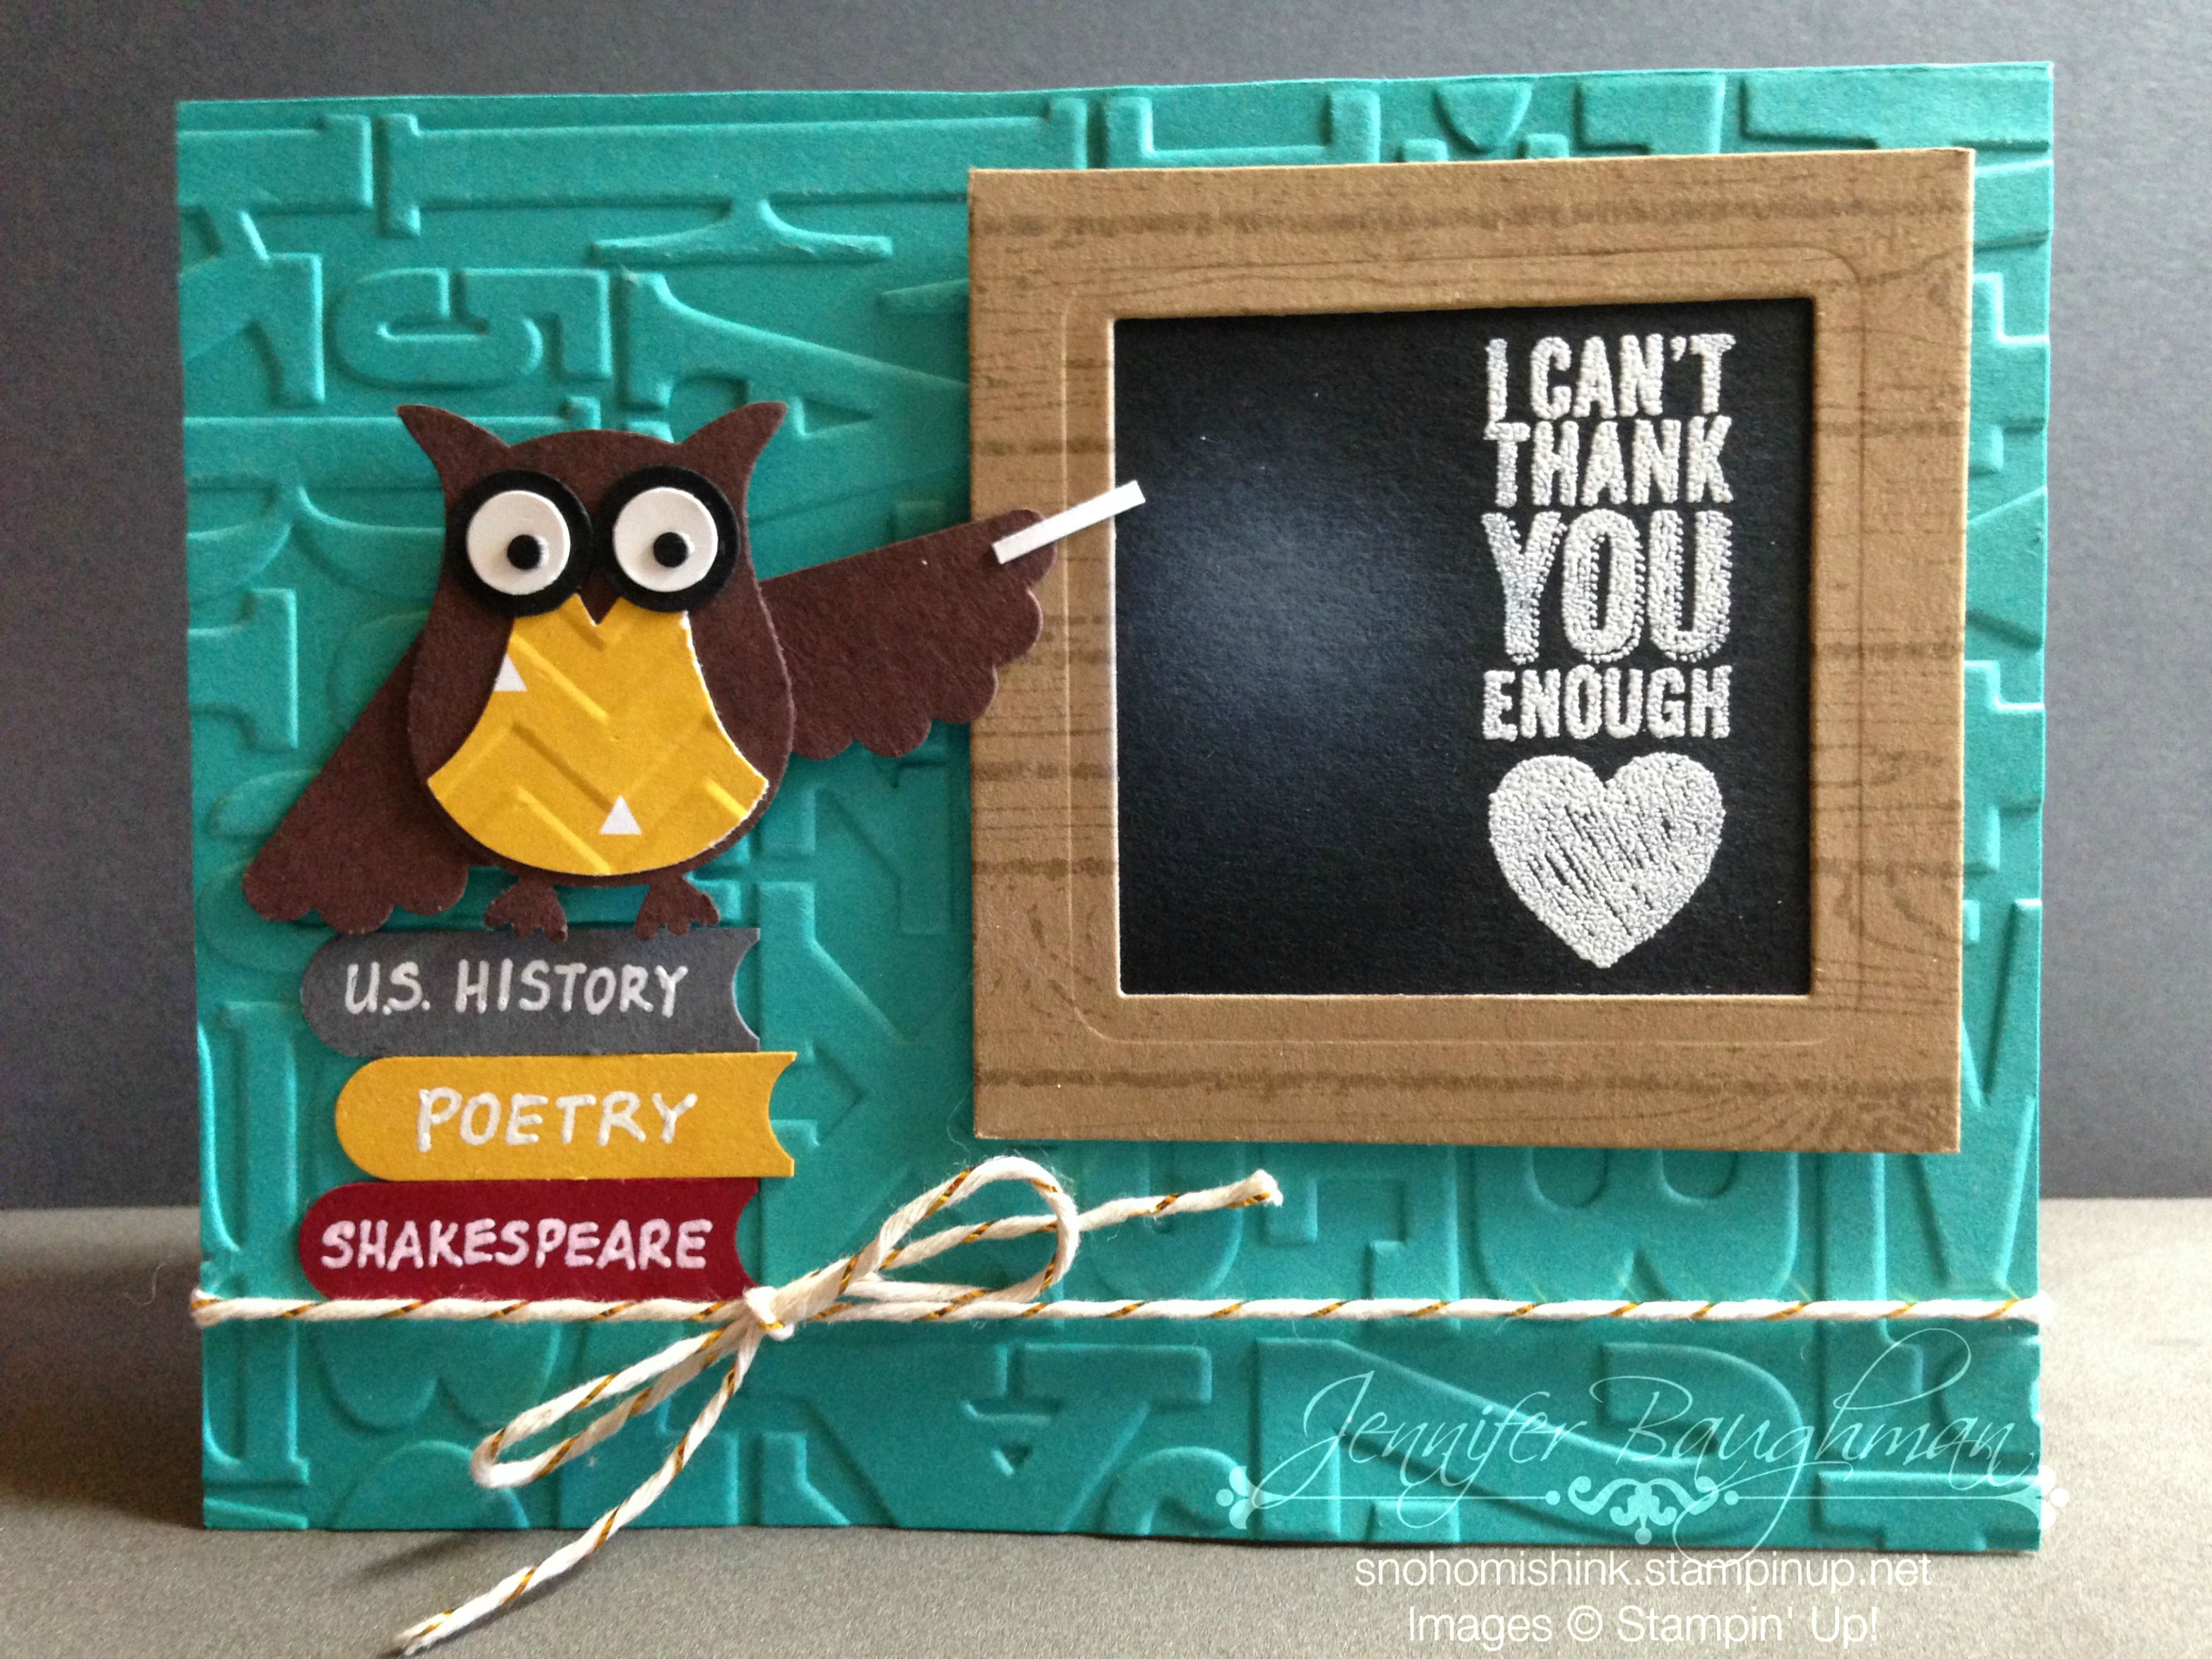 by Jennifer Baughman, Independent Stampin' Up! Demonstrator, Teacher Appreciation card... so cute!! All Stampin' Up products, including Chalk Talk, Hardwood, Alphabet Press, owl punch, word window, gold baker's twine